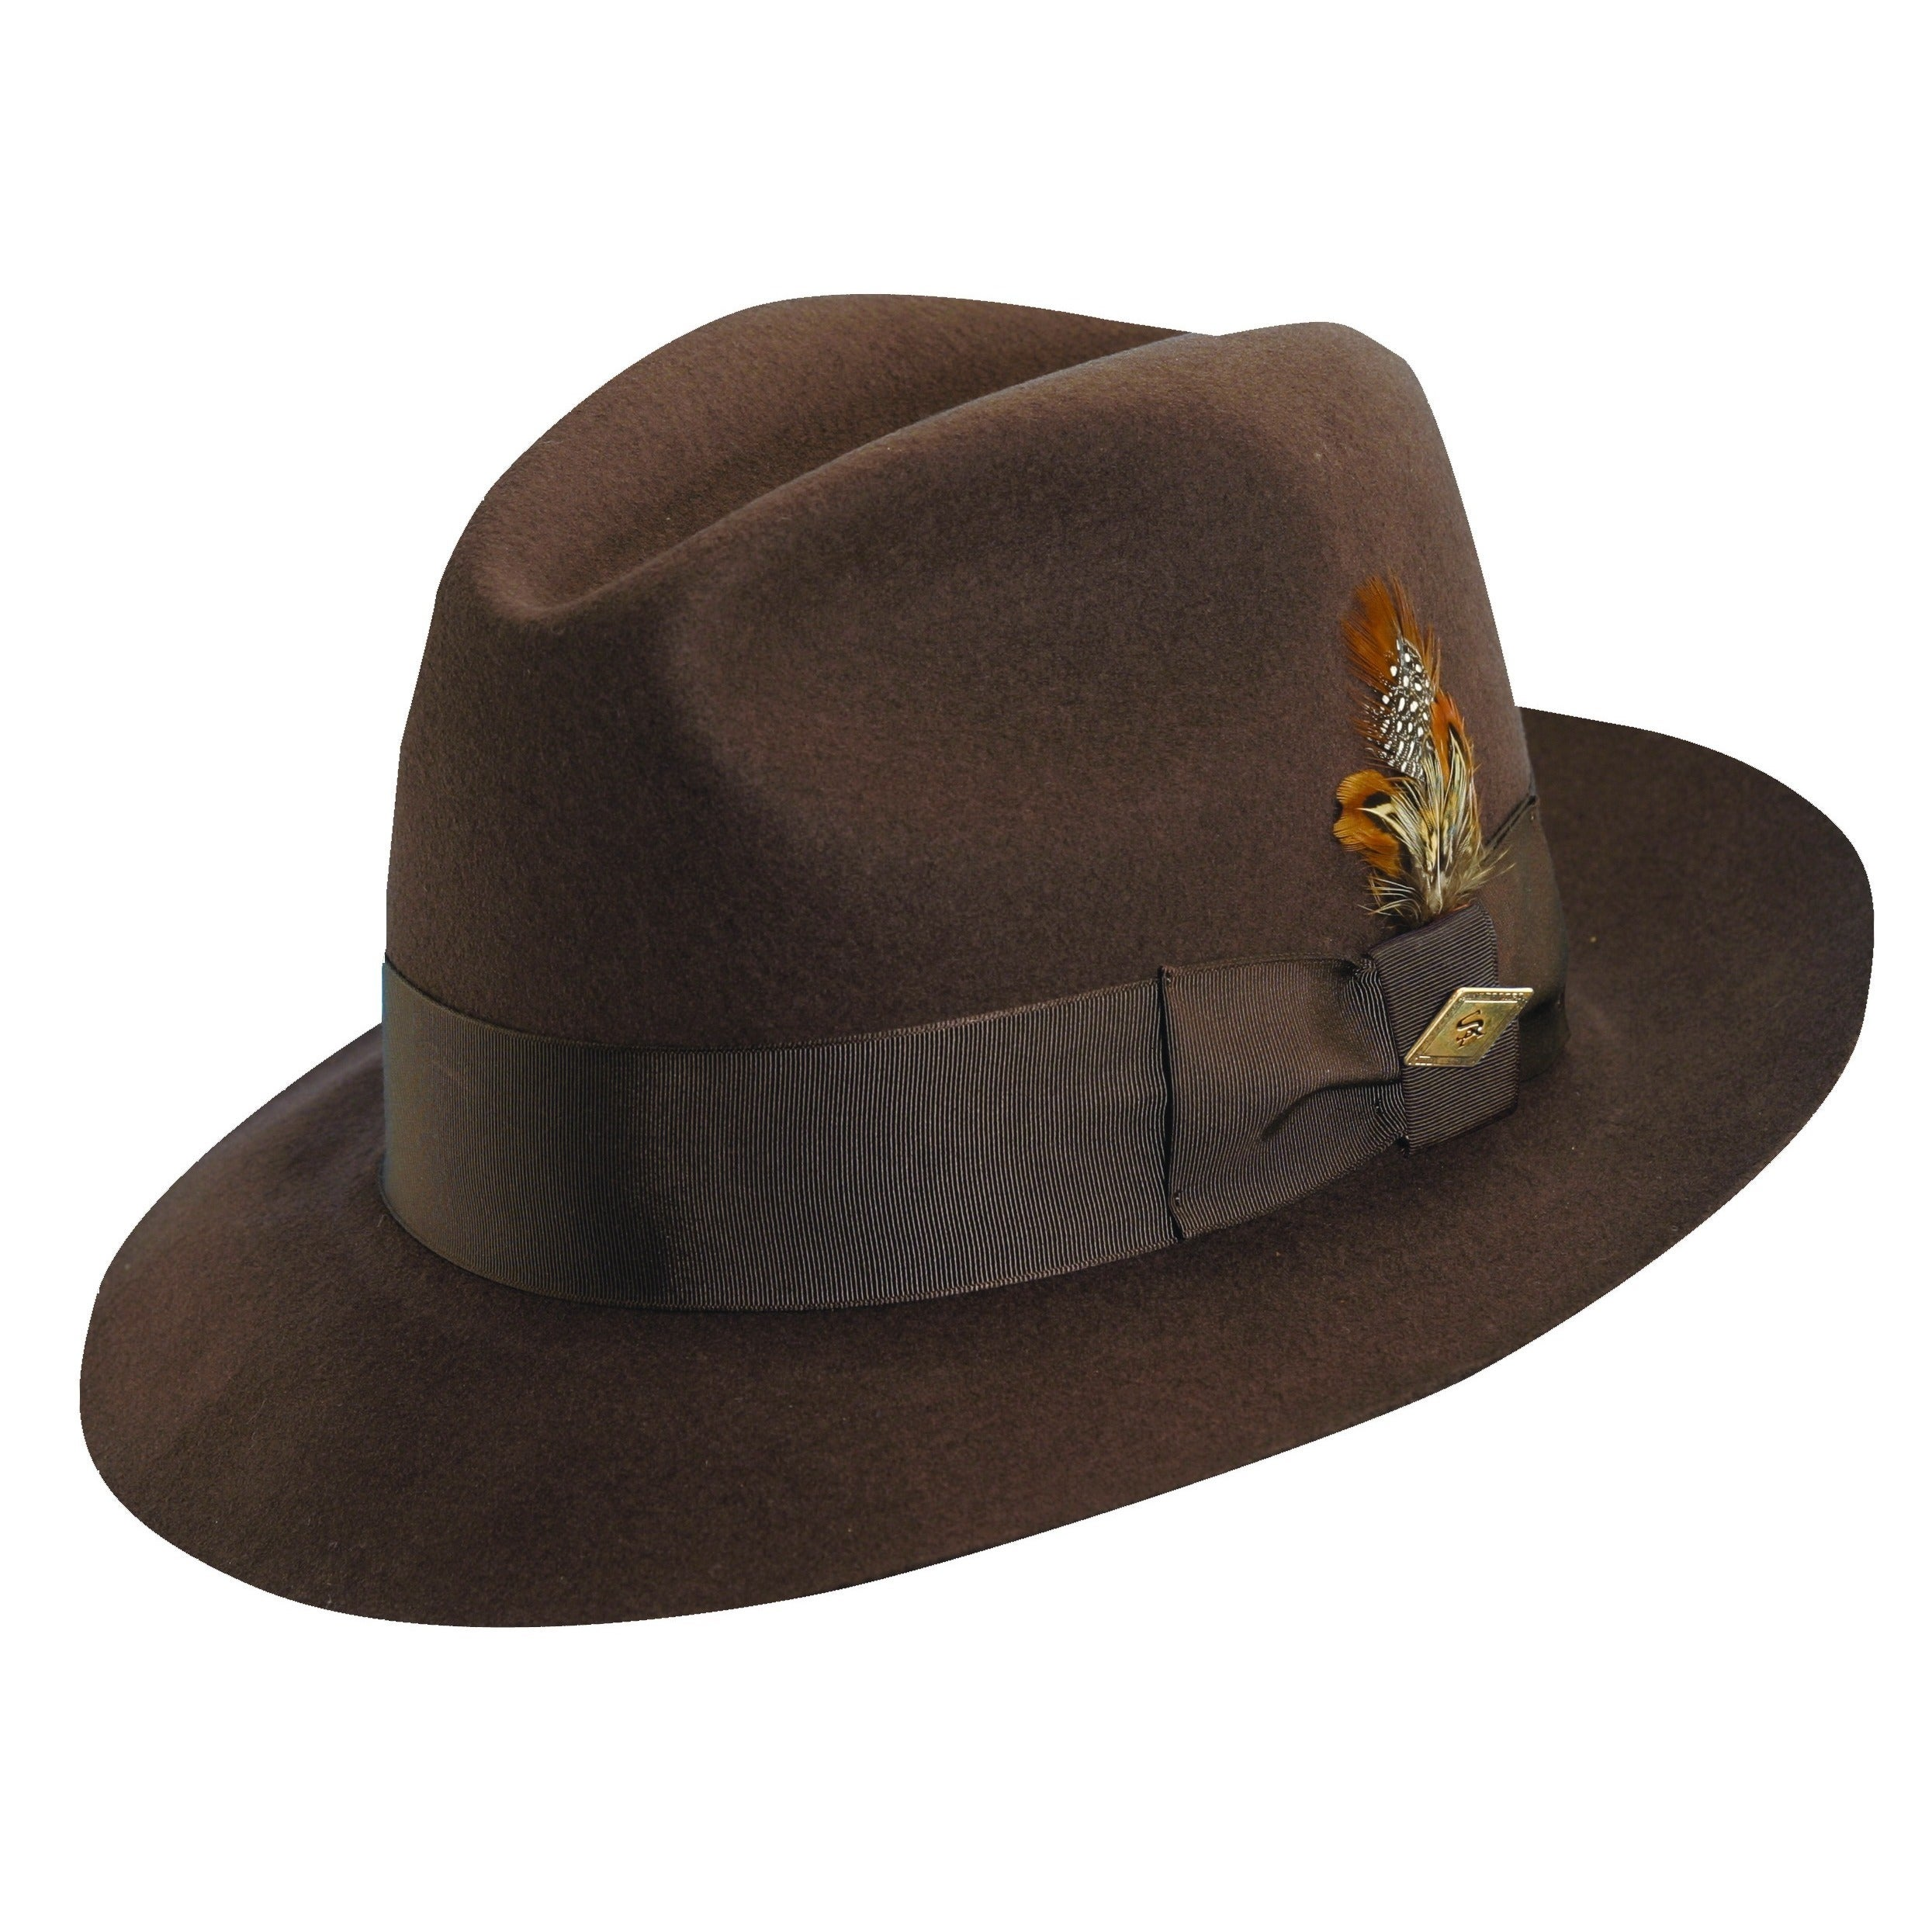 300eecd910ad3e Shop Stacy Adams Cannery Row Wool Fedora Hat - Free Shipping Today ...